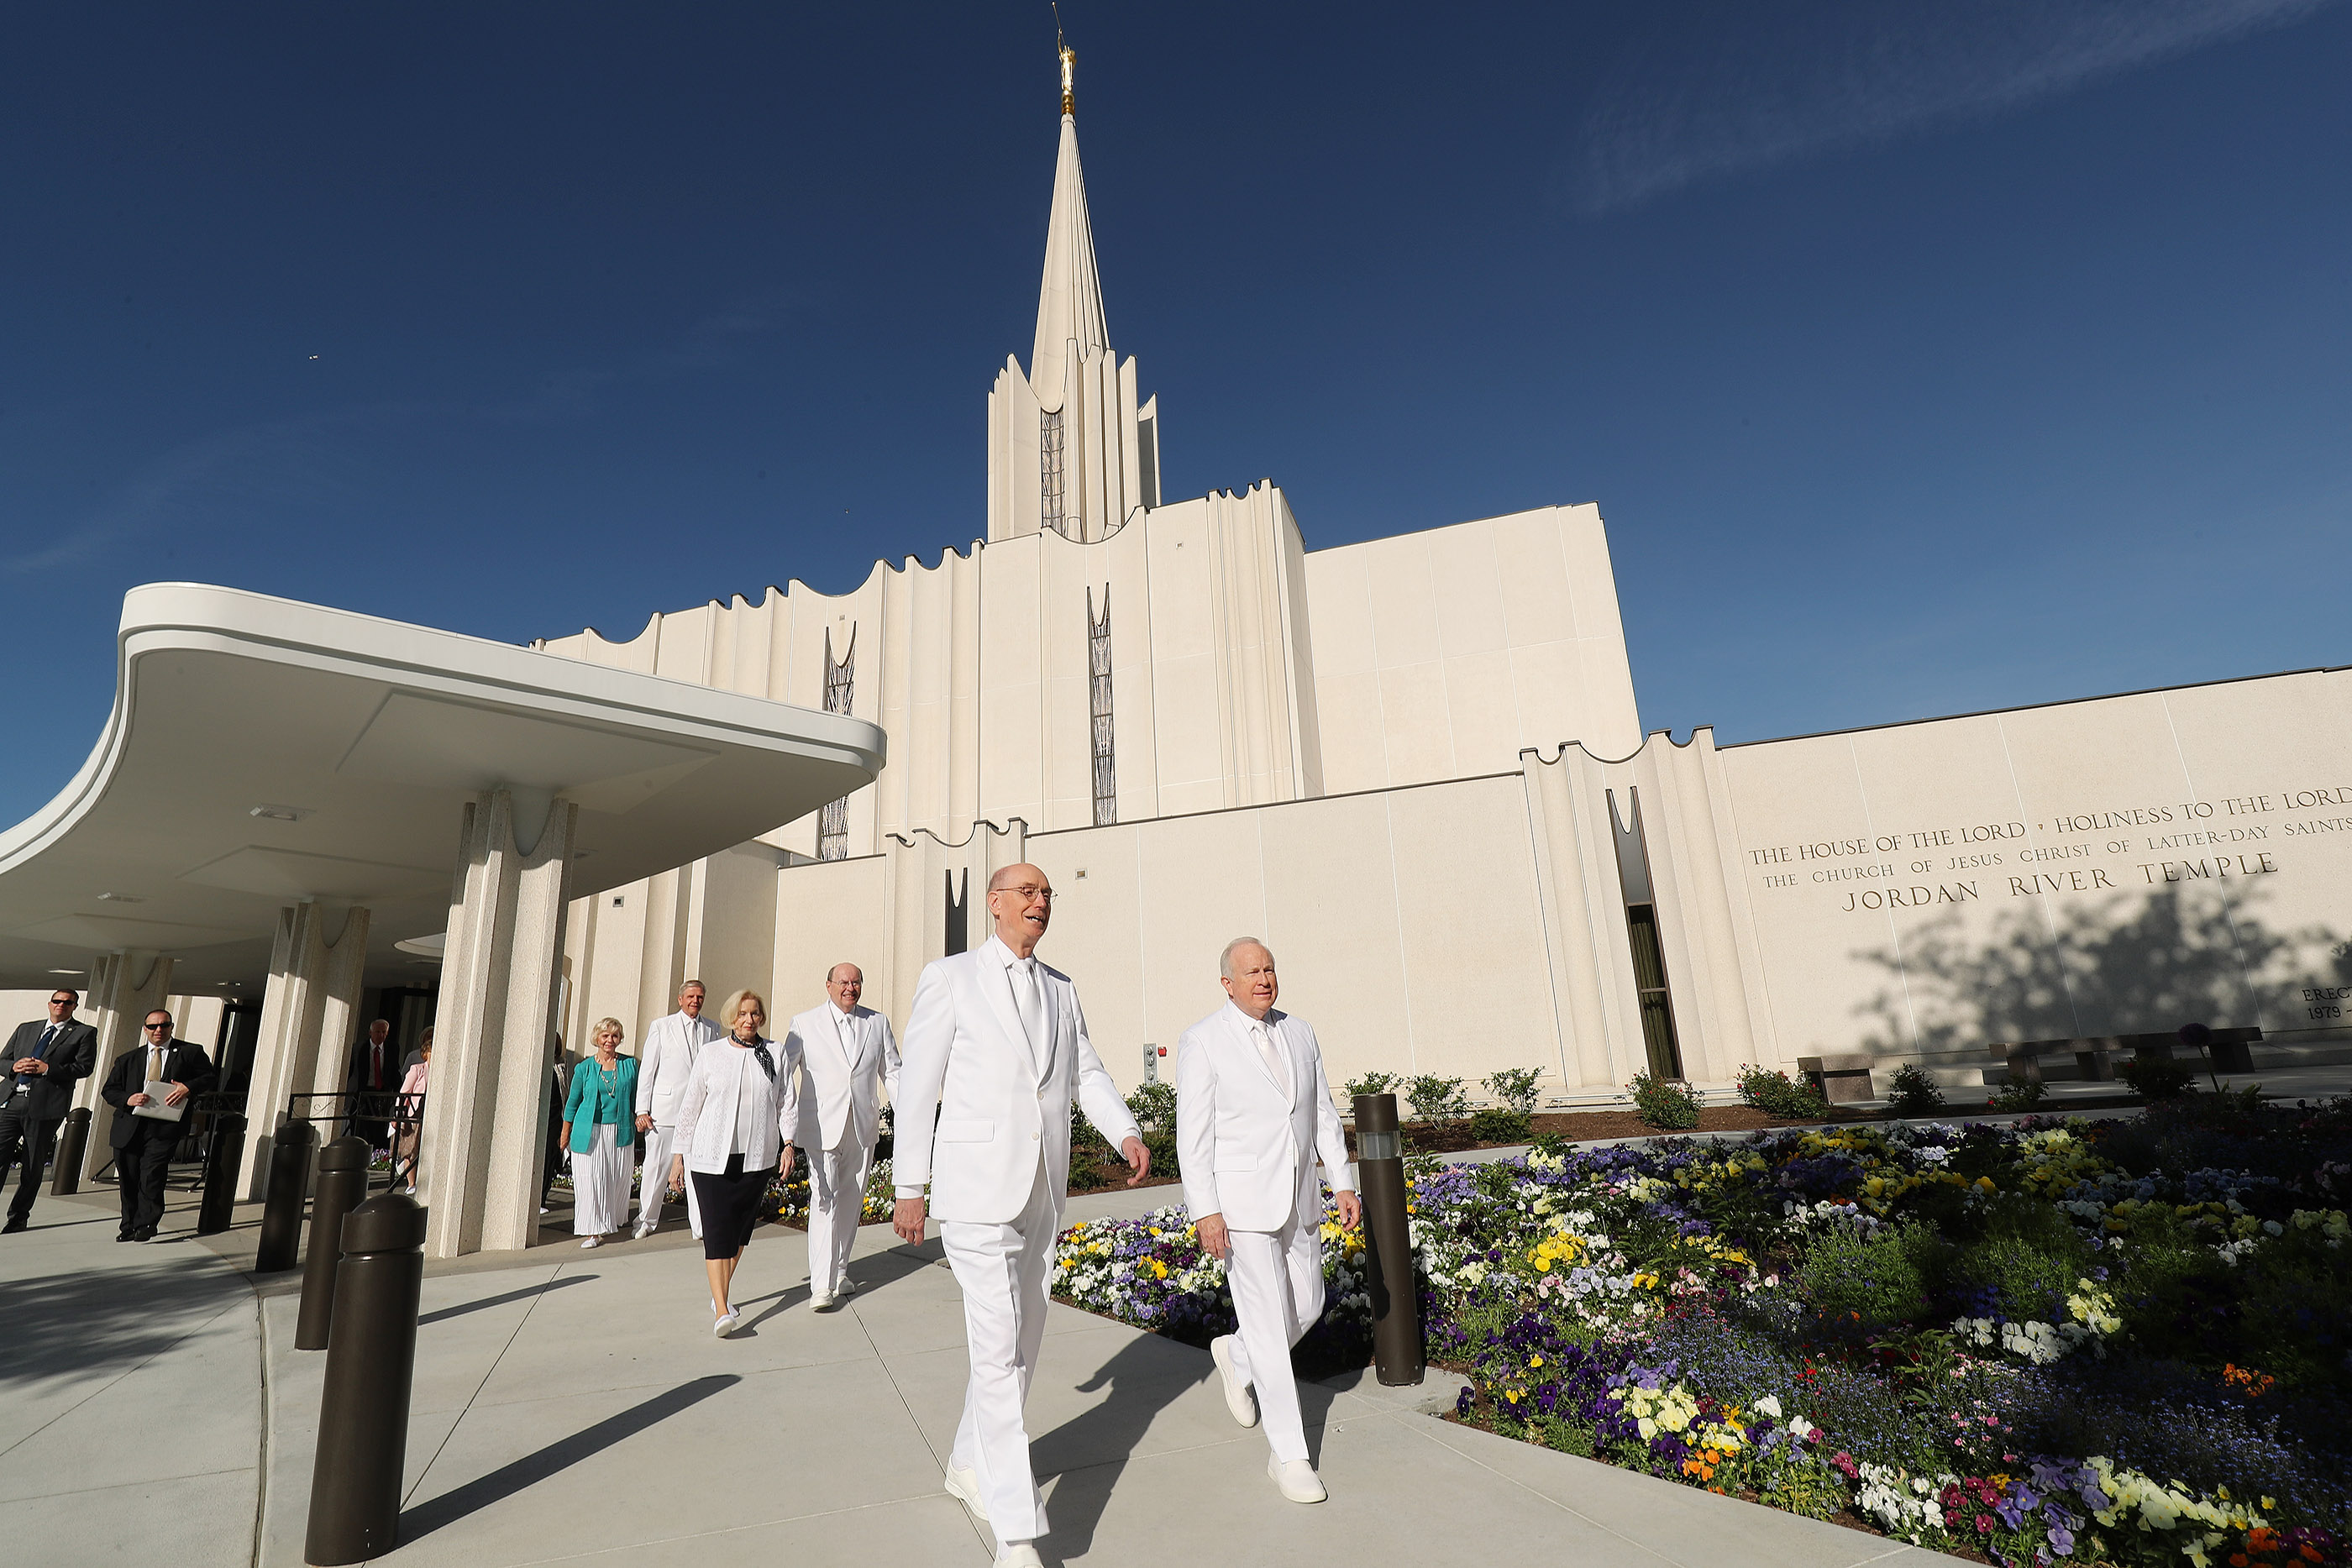 President Henry B. Eyring, second counselor in the First Presidency, left, and Elder Timothy J. Dyches, General Authority Seventy, right, walk outside the Jordan River Utah Temple prior to rededication services in South Jordan on Sunday, May 20, 2018.